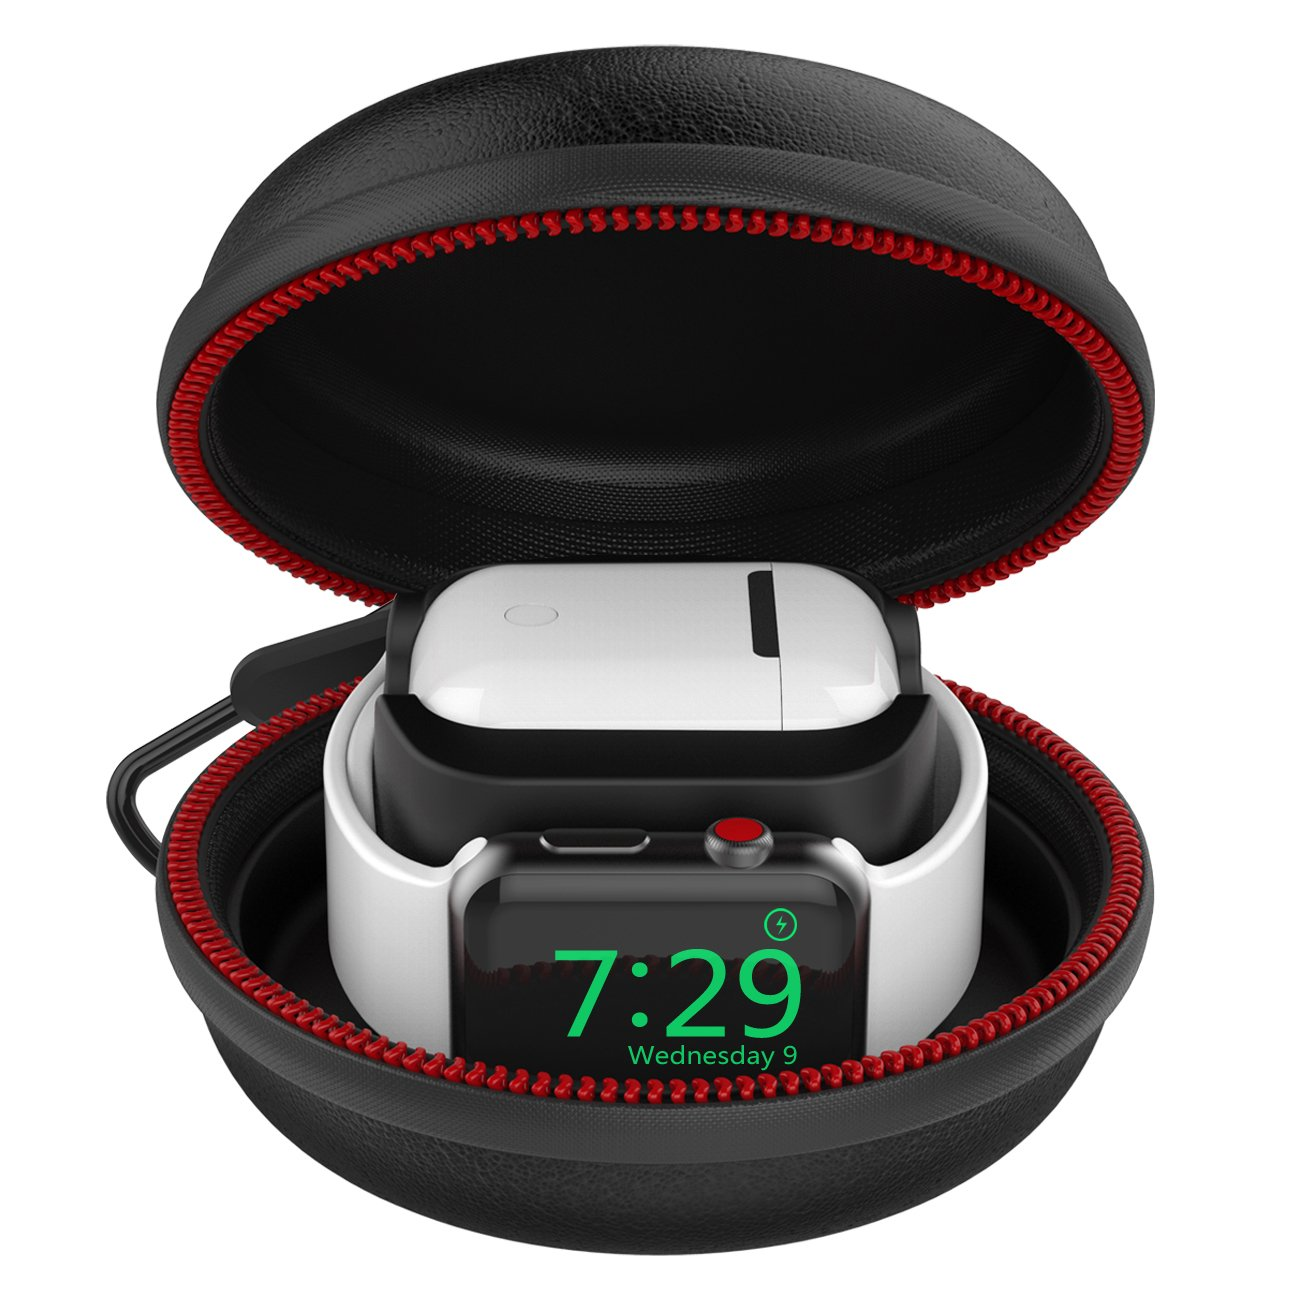 For Apple Watch Stand, Airpods Charging Case Station Dock [2 in 1] with EVA Protective Travel Carrying Case Holder for Apple Watch Charger Series 3/Series 2/Series 1/38mm/42mm & Airpods Accessories